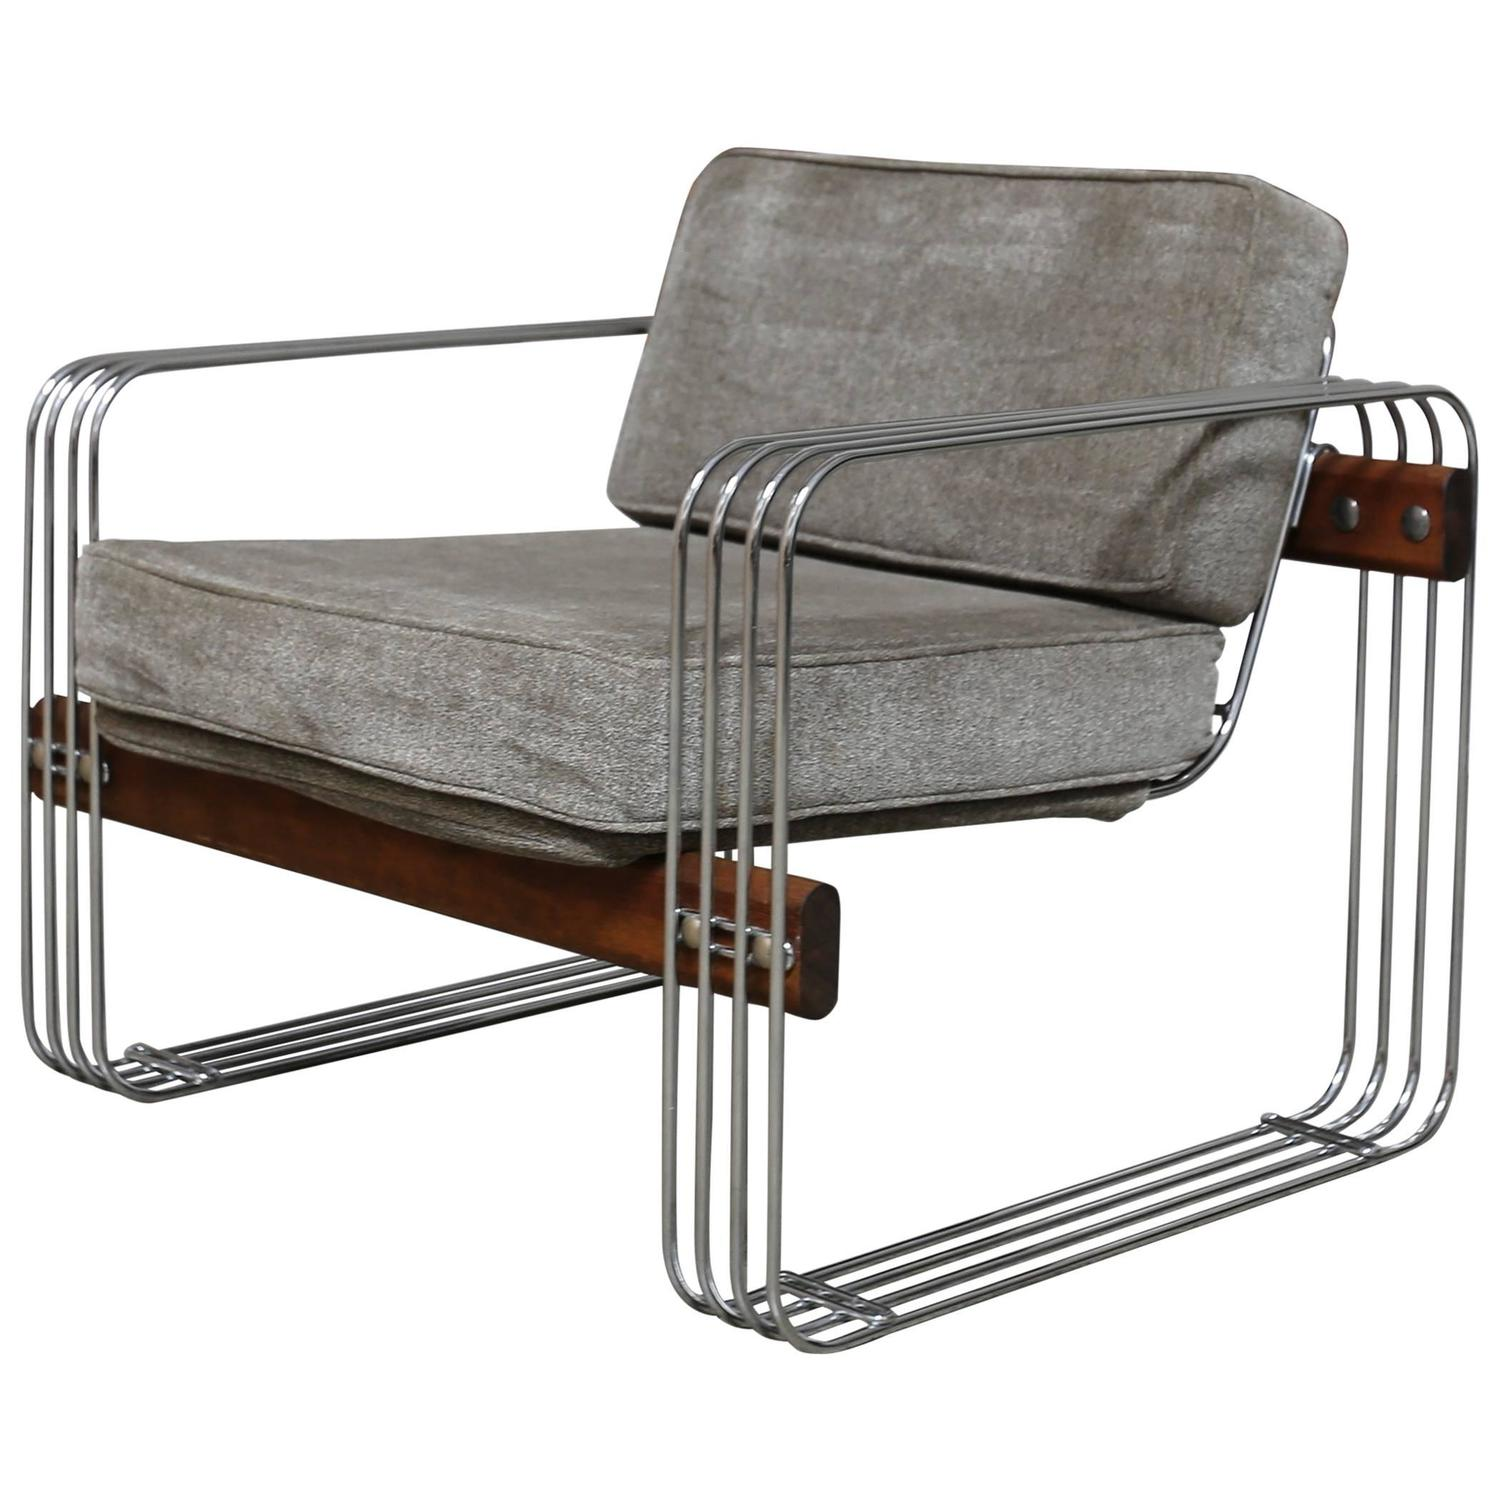 "Ascona"" Lounge Chairs by Heinz Meier for Landes For Sale at 1stdibs"